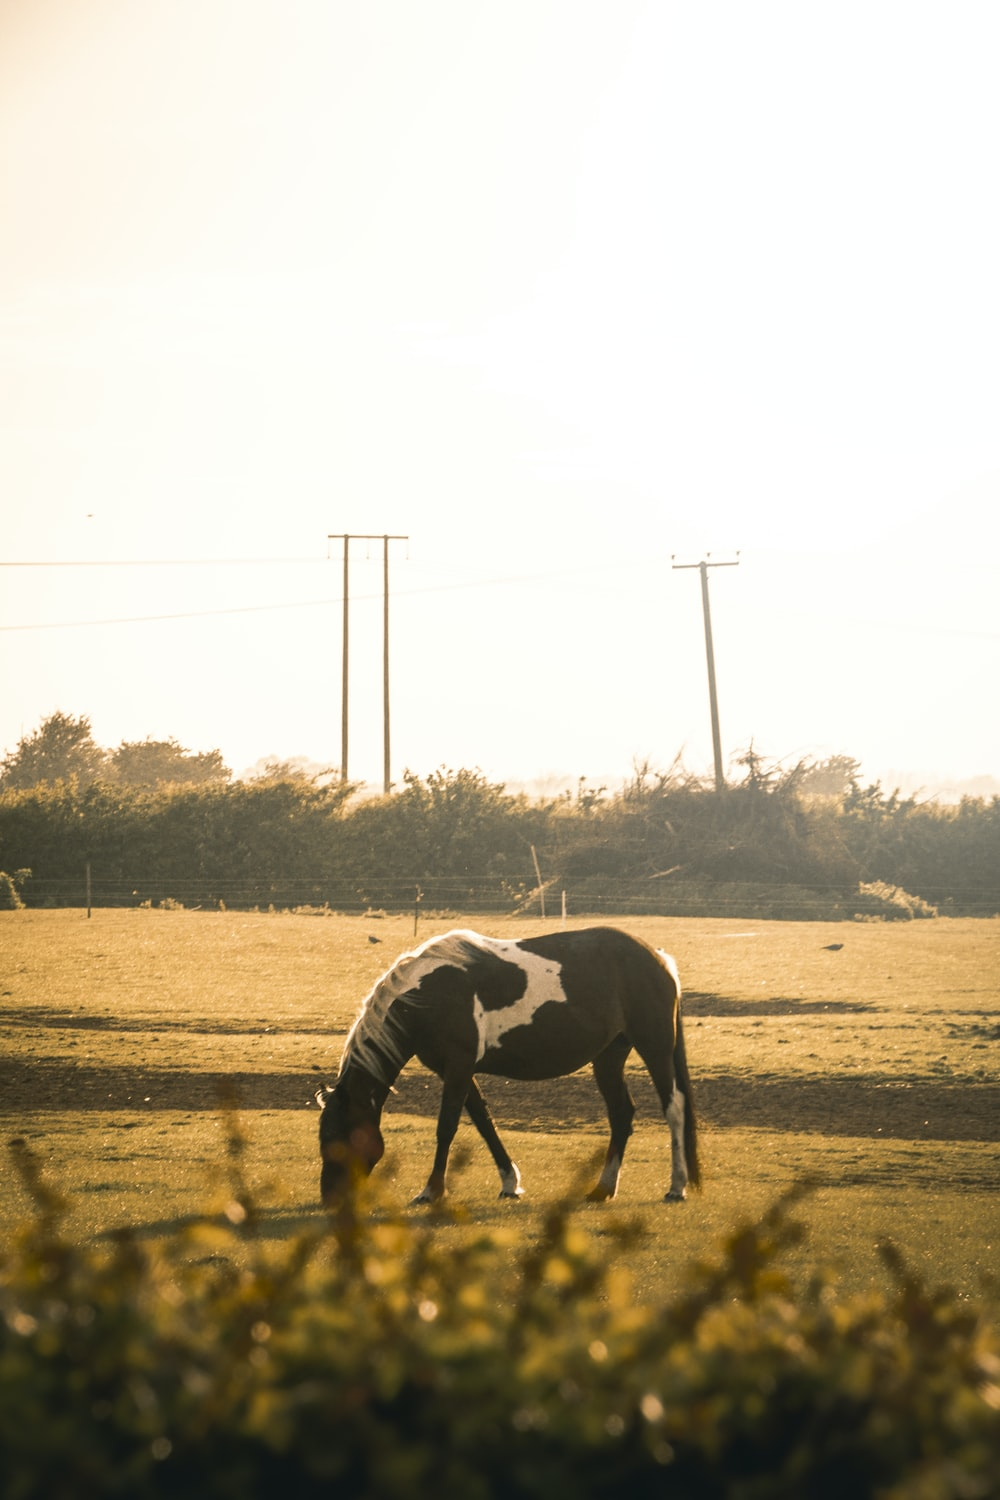 black and white horse running on brown field during daytime